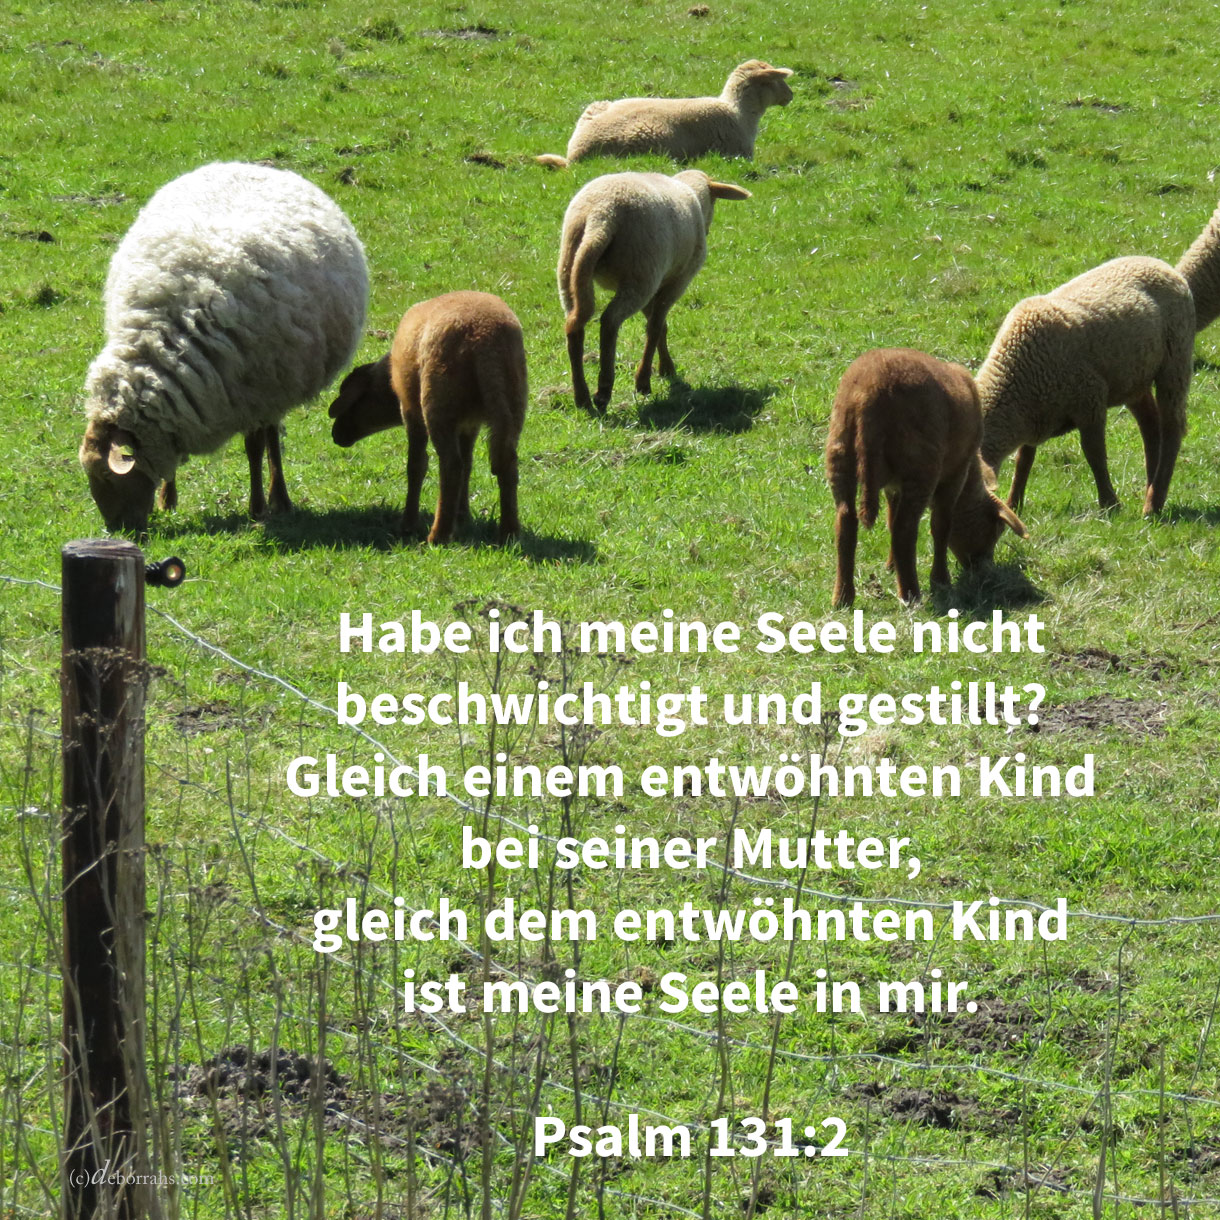 Habe ich meine Seele nicht beschwichtigt und gestillt? Gleich einem entwöhnten Kinde bei seiner Mutter, gleich dem entwöhnten Kinde ist meine Seele in mir ( Psalm 131,2 )